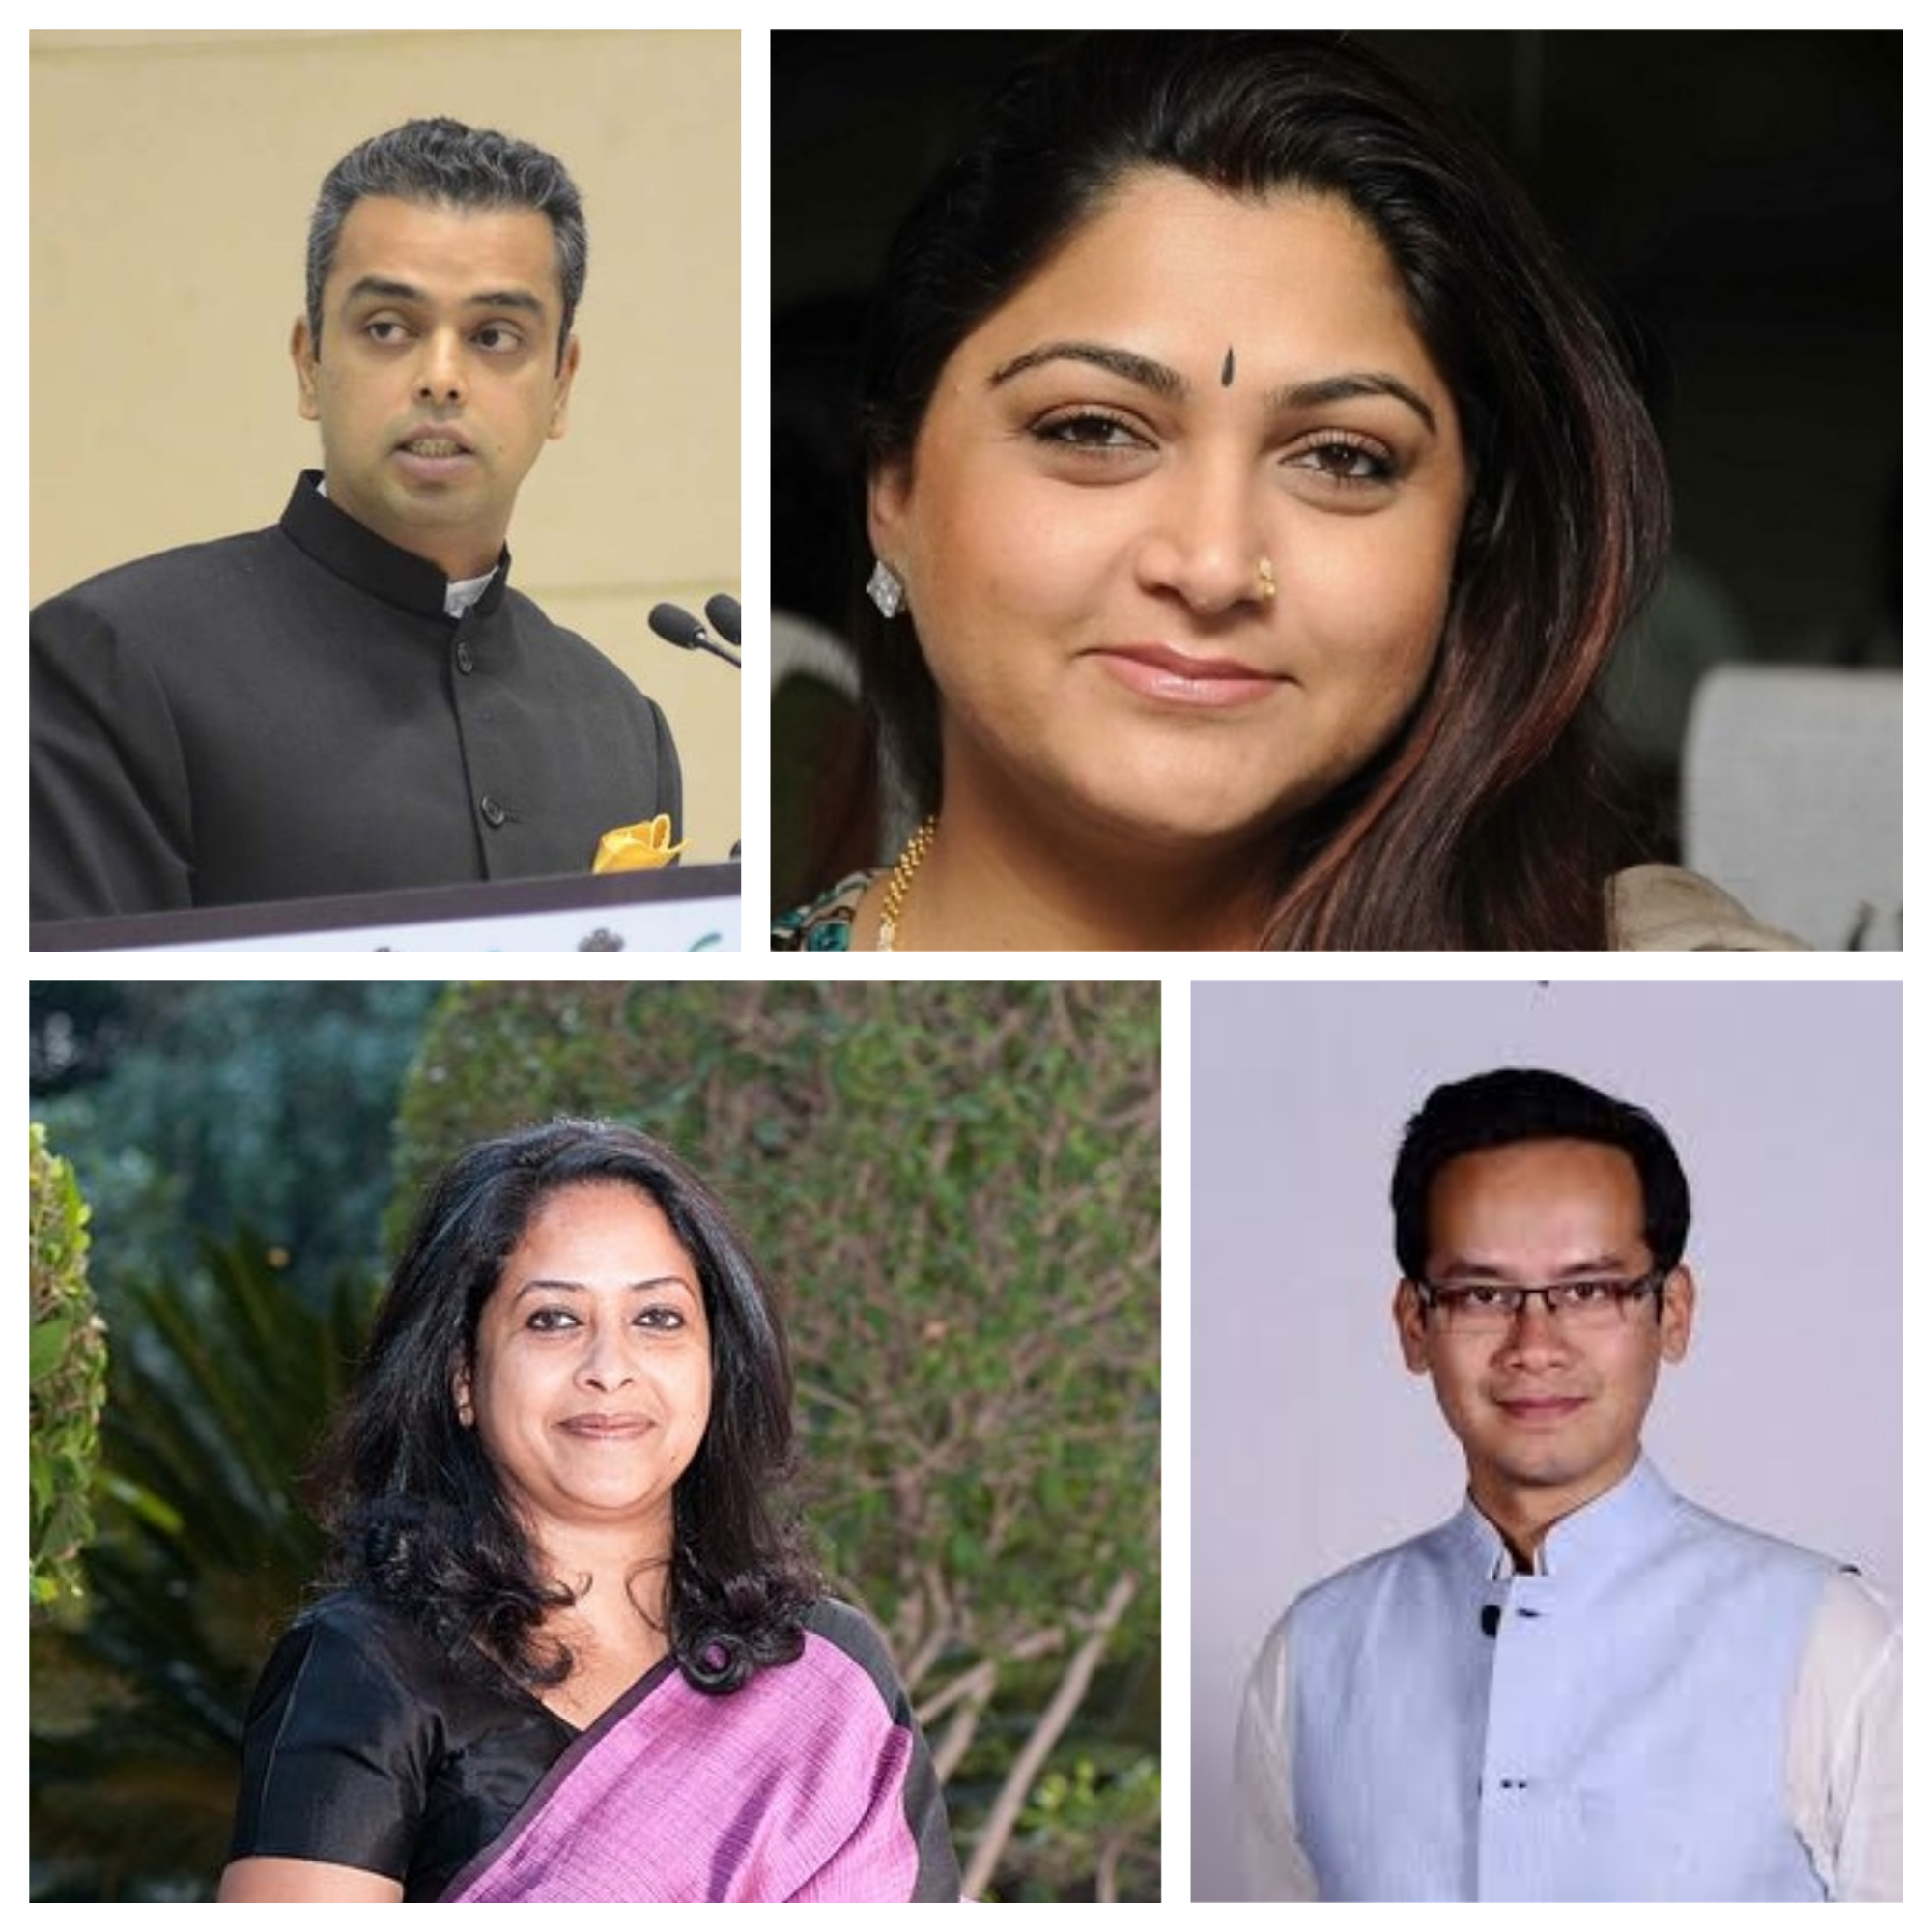 Young Congress leaders (clockwise from bottom left) Sharmistha Mukherjee, Milind Deora, Khushboo and Gaurav Gogoi form part of delegation going to Singapore from July 8 to 11. Photo courtesy: Wikipedia